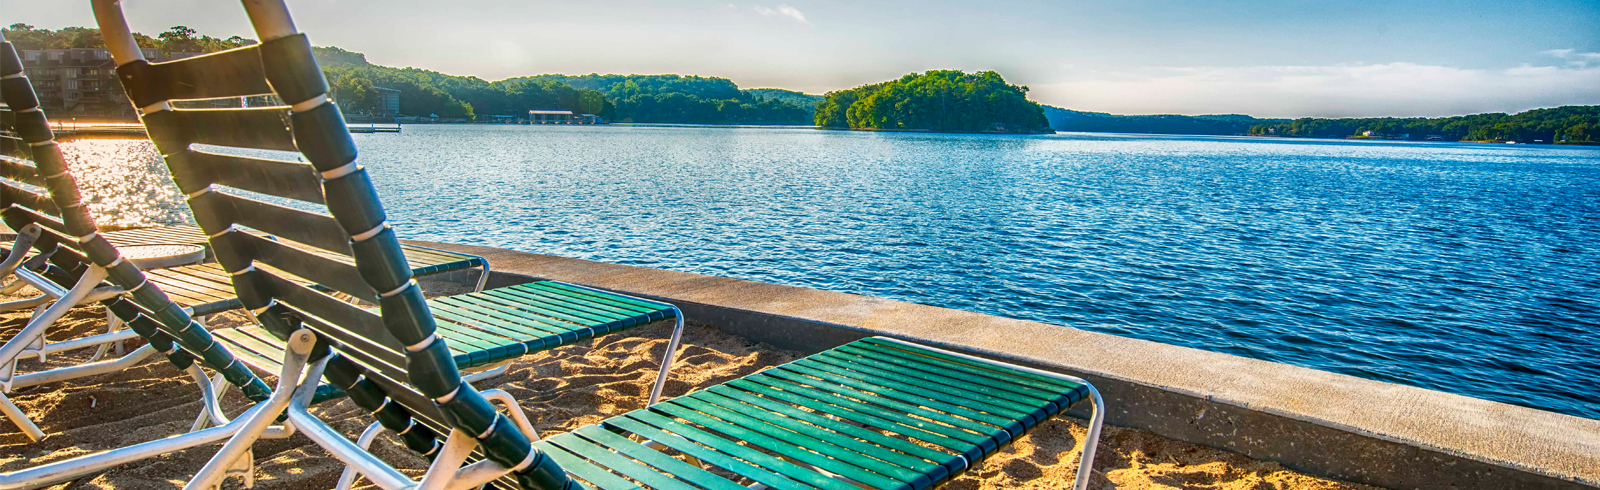 Lake Of The Ozarks Resort Faqs Tan Tar A Resort